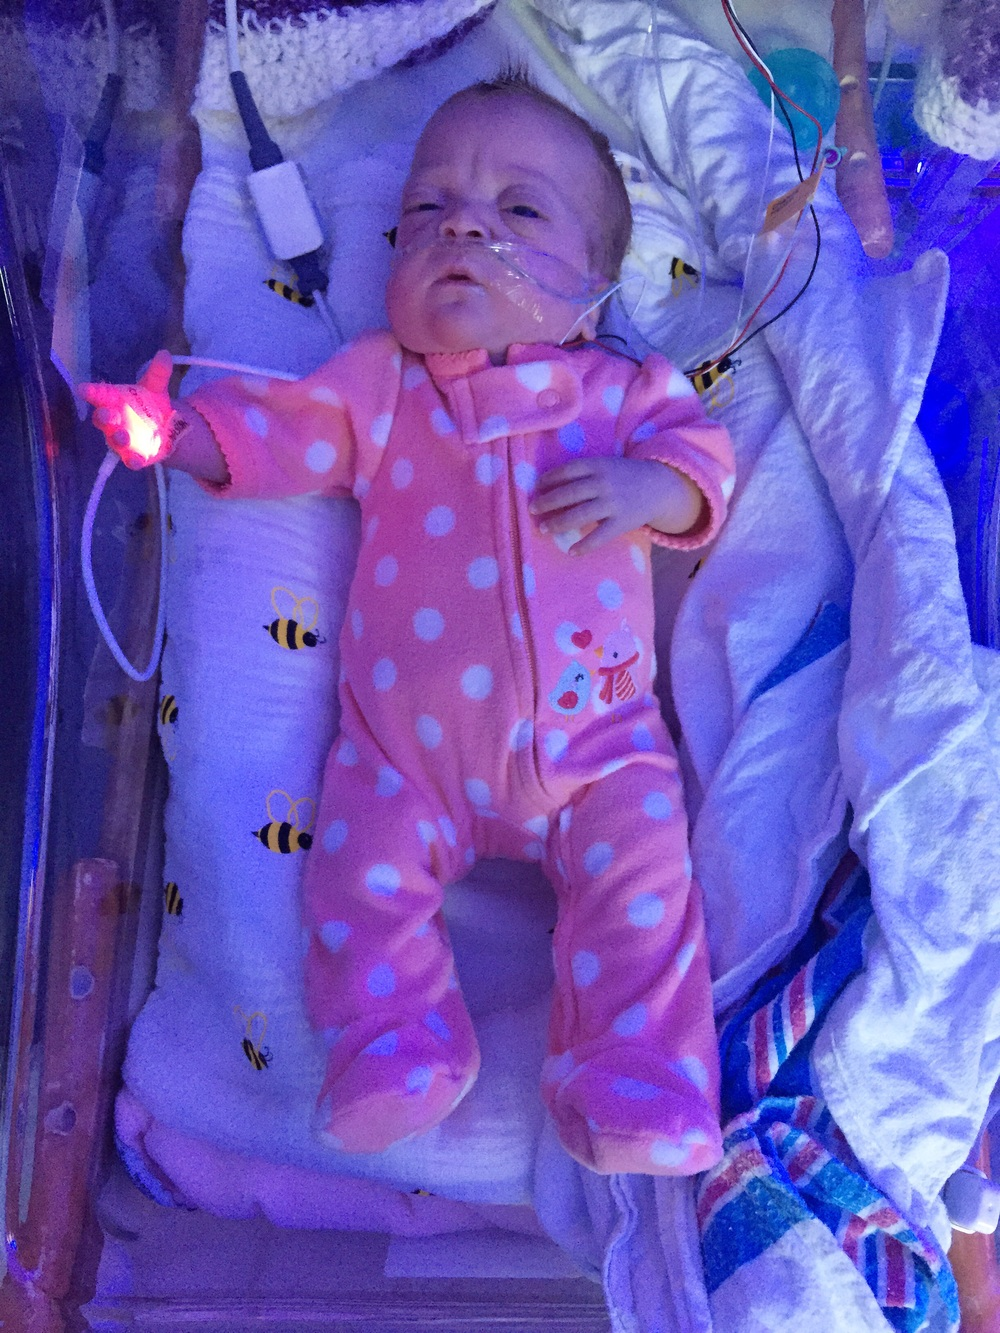 Thanks Ivy for the sweet swag! Probably one of my last times in a preemie outfit!